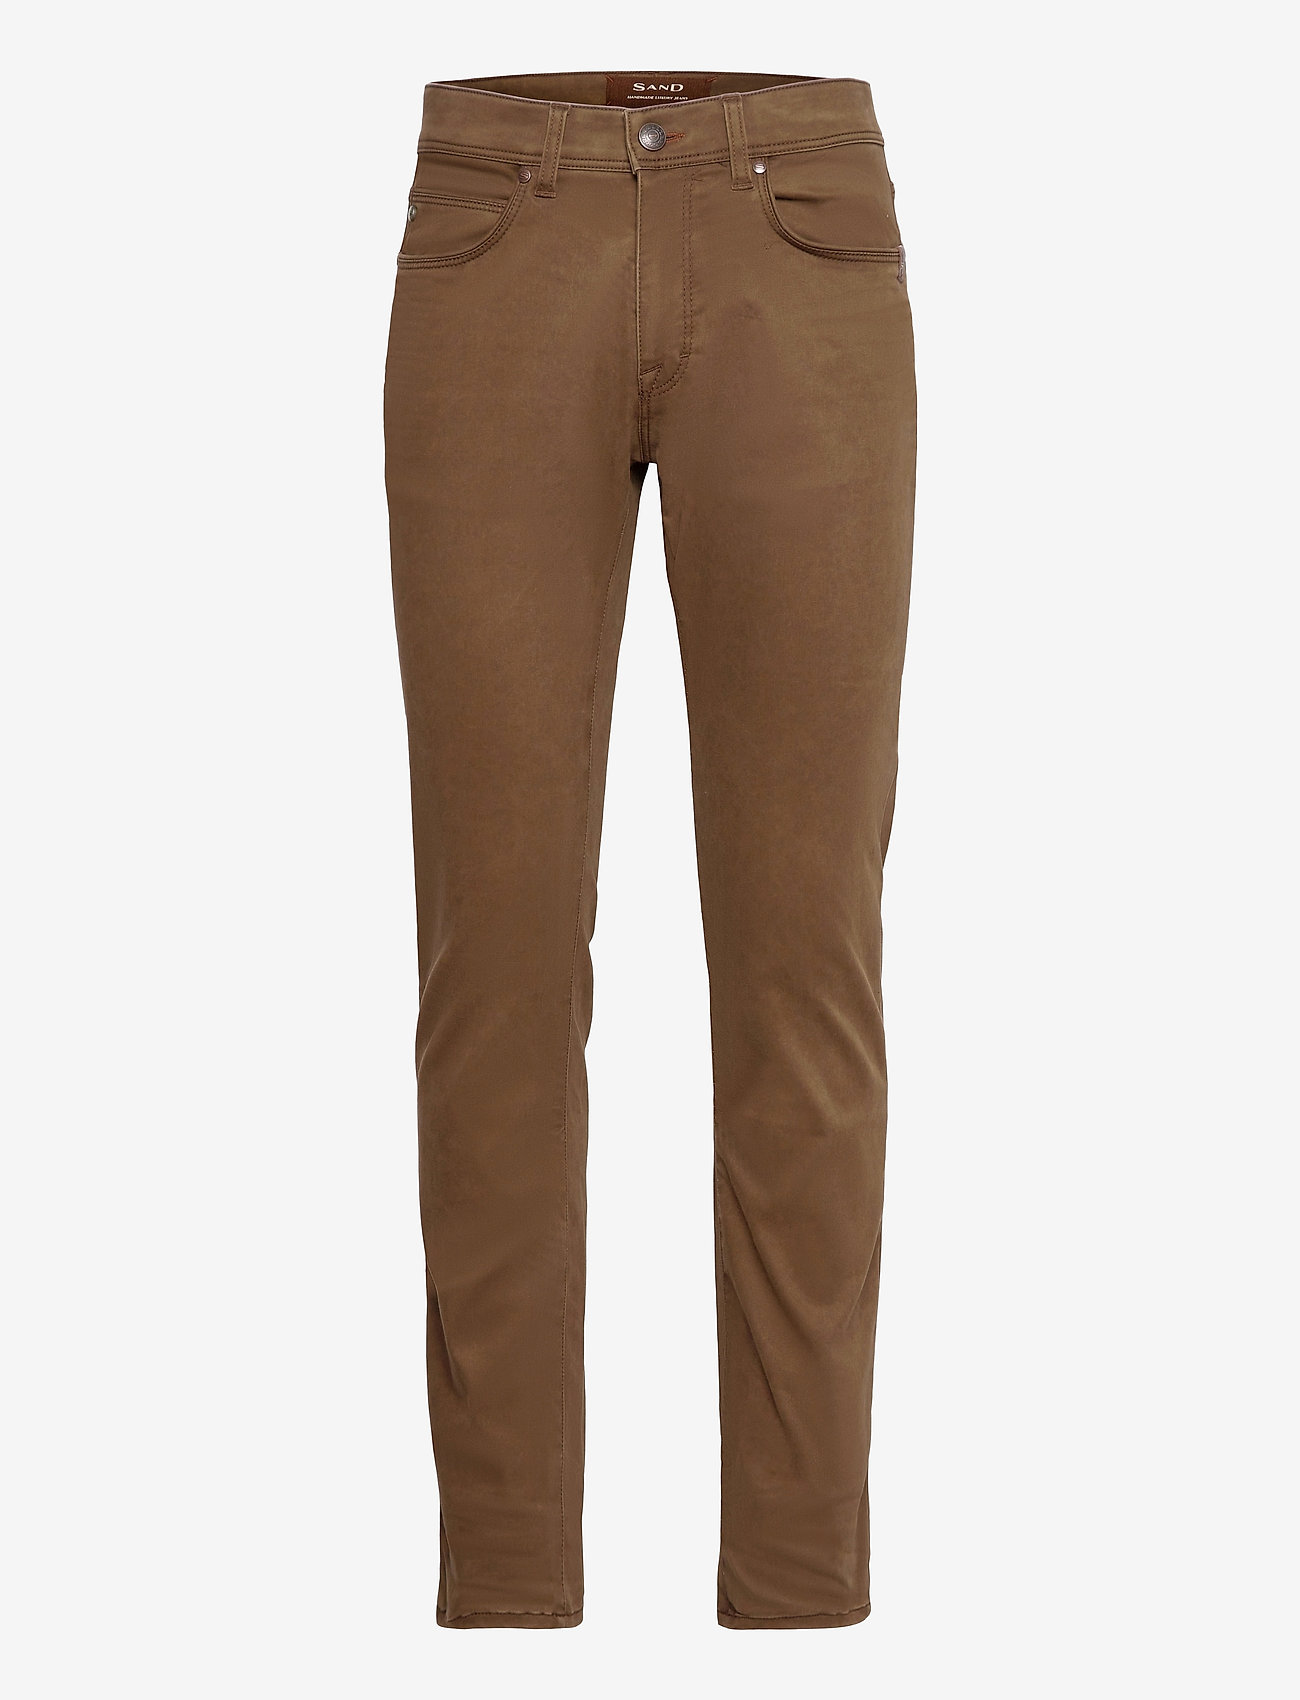 "SAND - Diamond Wash - Burton NS 32"" - casual trousers - brown - 0"